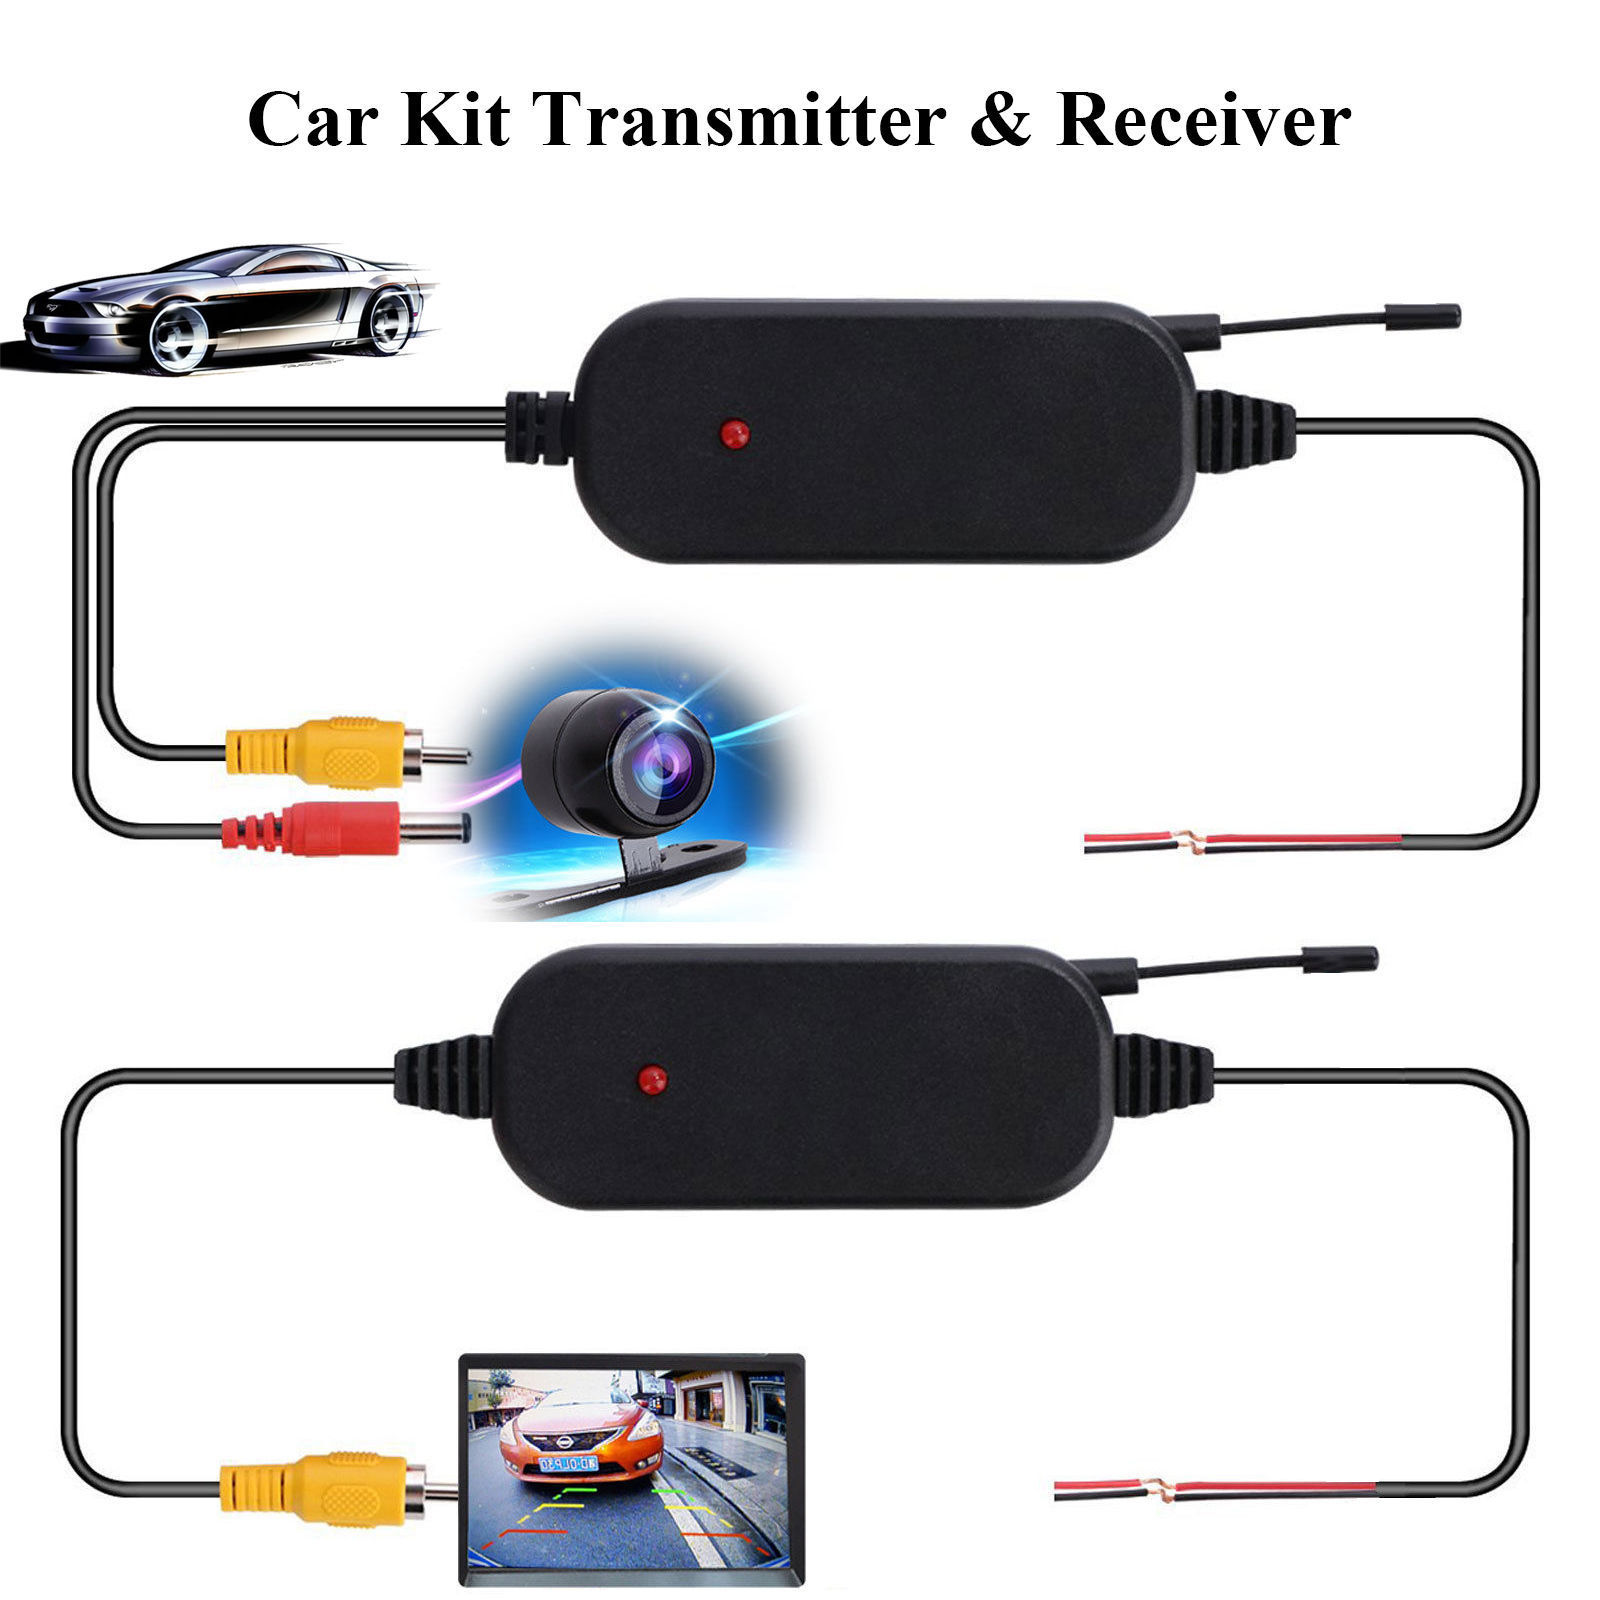 EEEKit 2.4G Wireless RCA Color Video Transmitter & Receiver Module Kit for 12V Car Rear View Camera